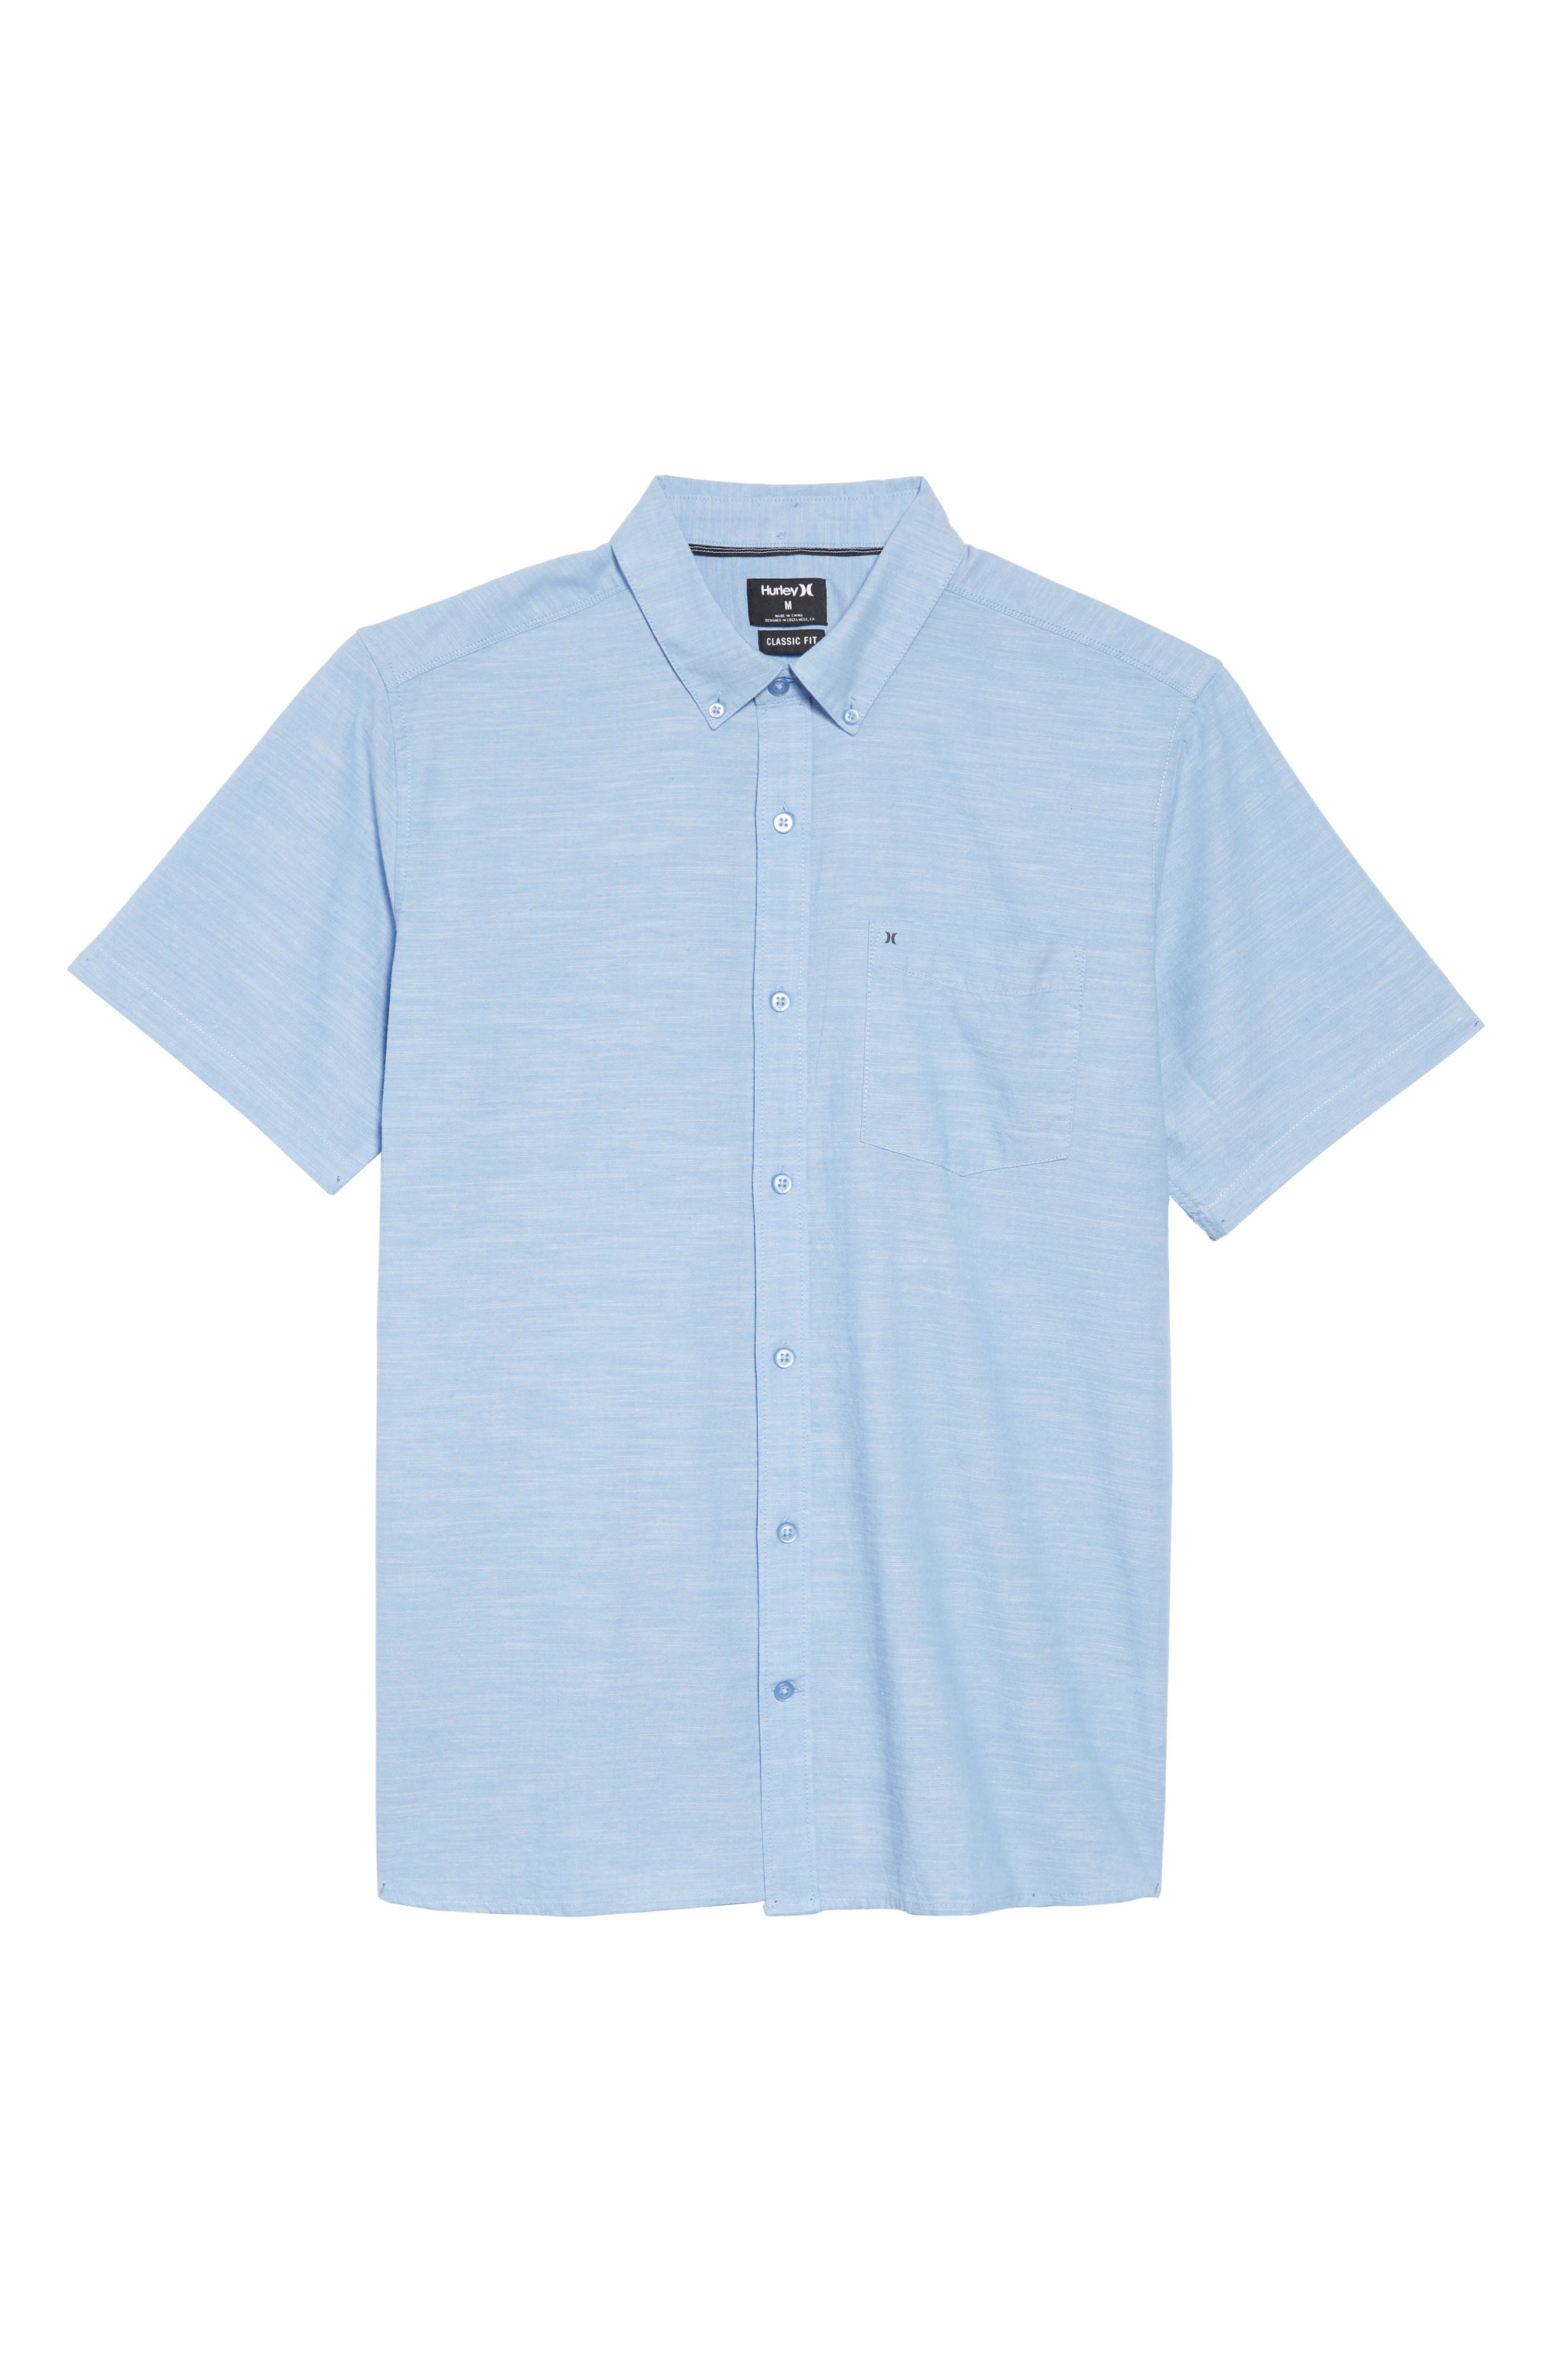 One & Only 2.0 Woven Shirt,                             Alternate thumbnail 6, color,                             BLUE OX